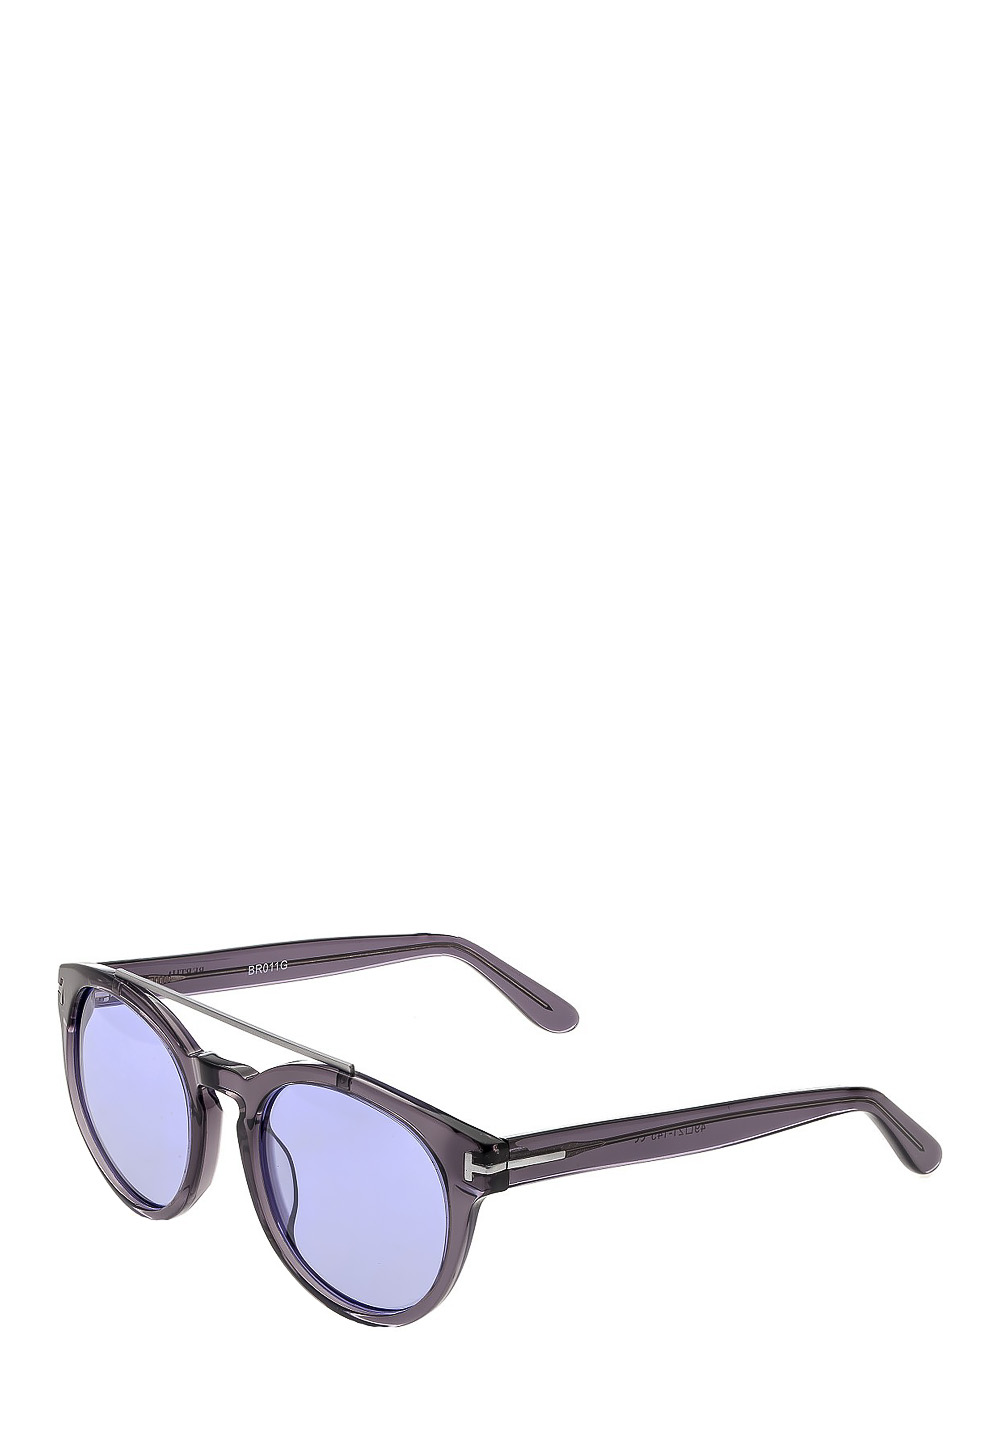 Bertha Sonnenbrille, Cat-Eye grau